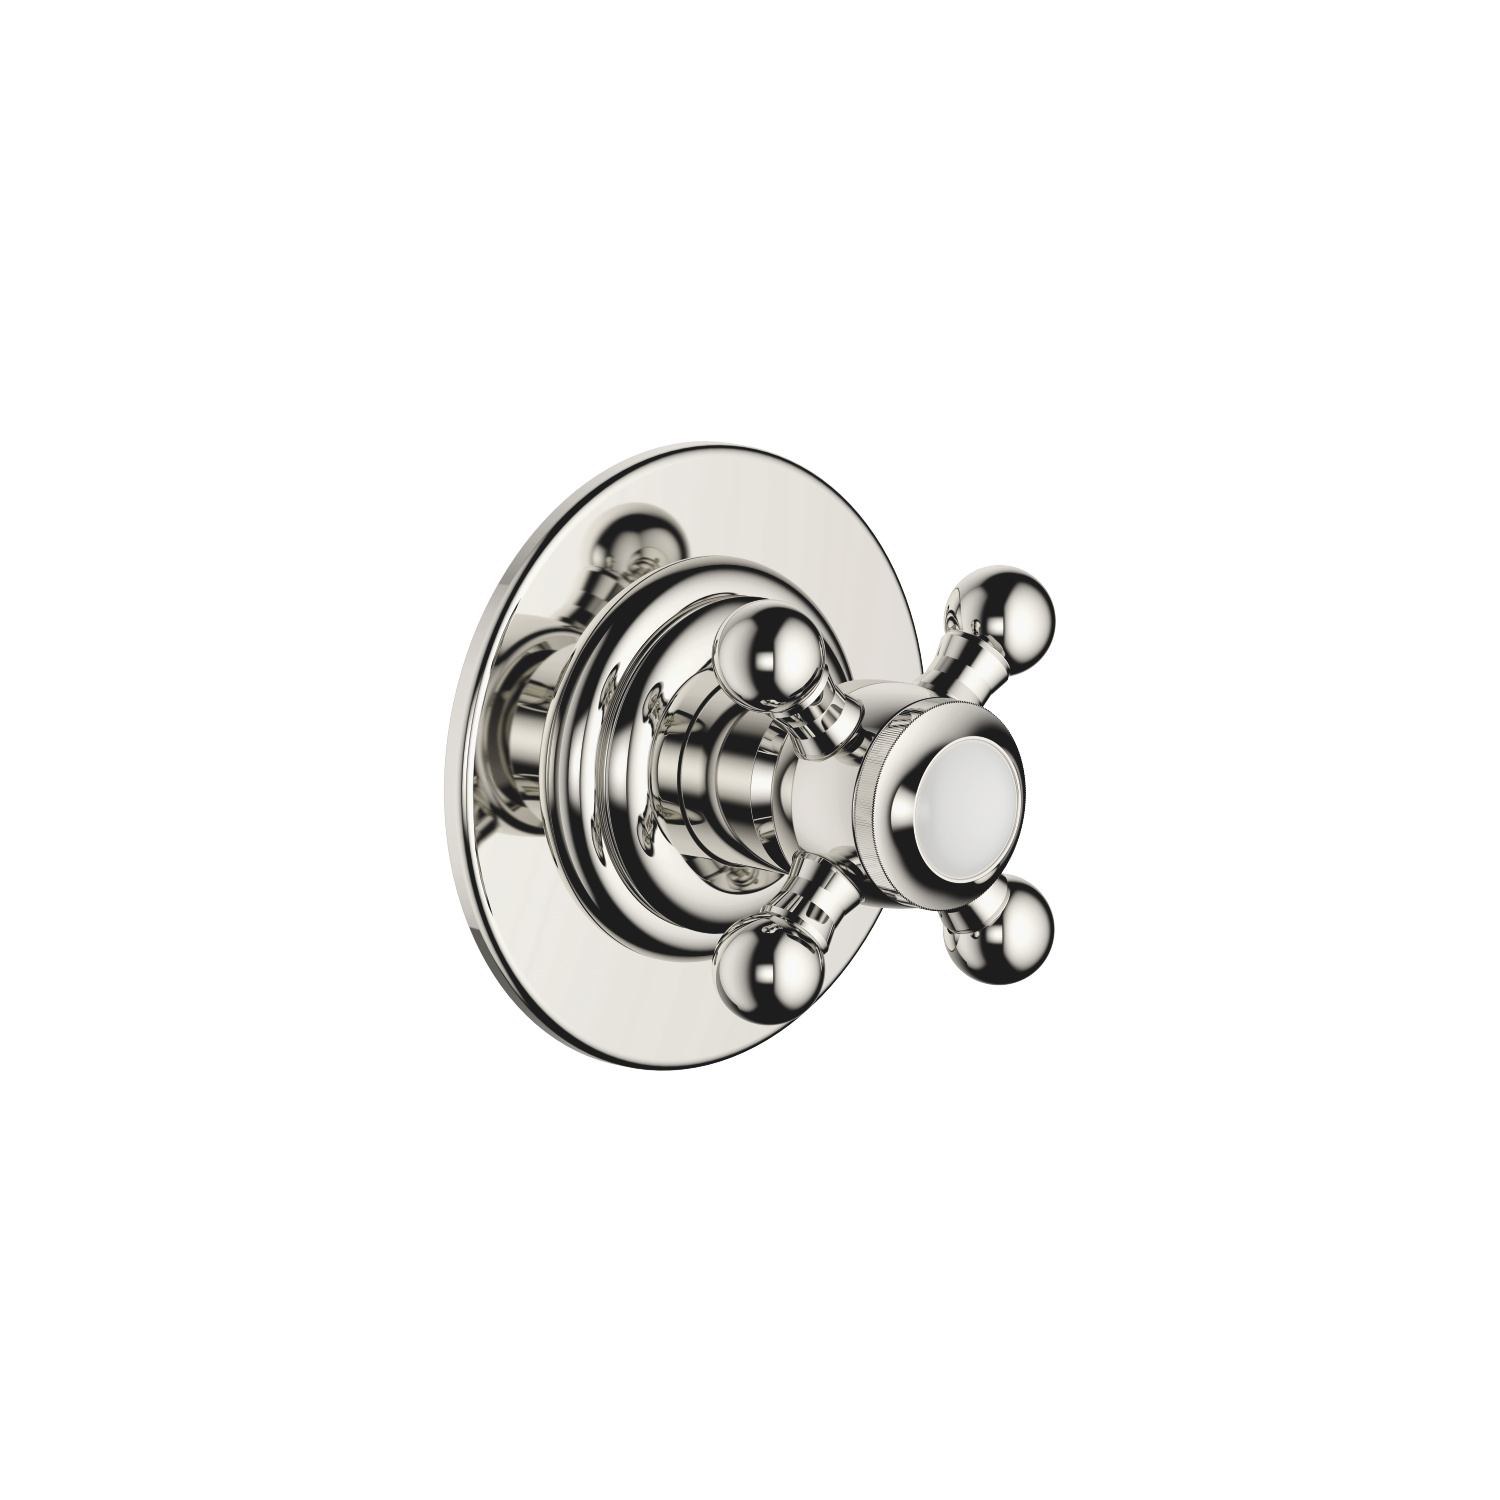 Wall mounted two- and three-way diverter trim - platinum